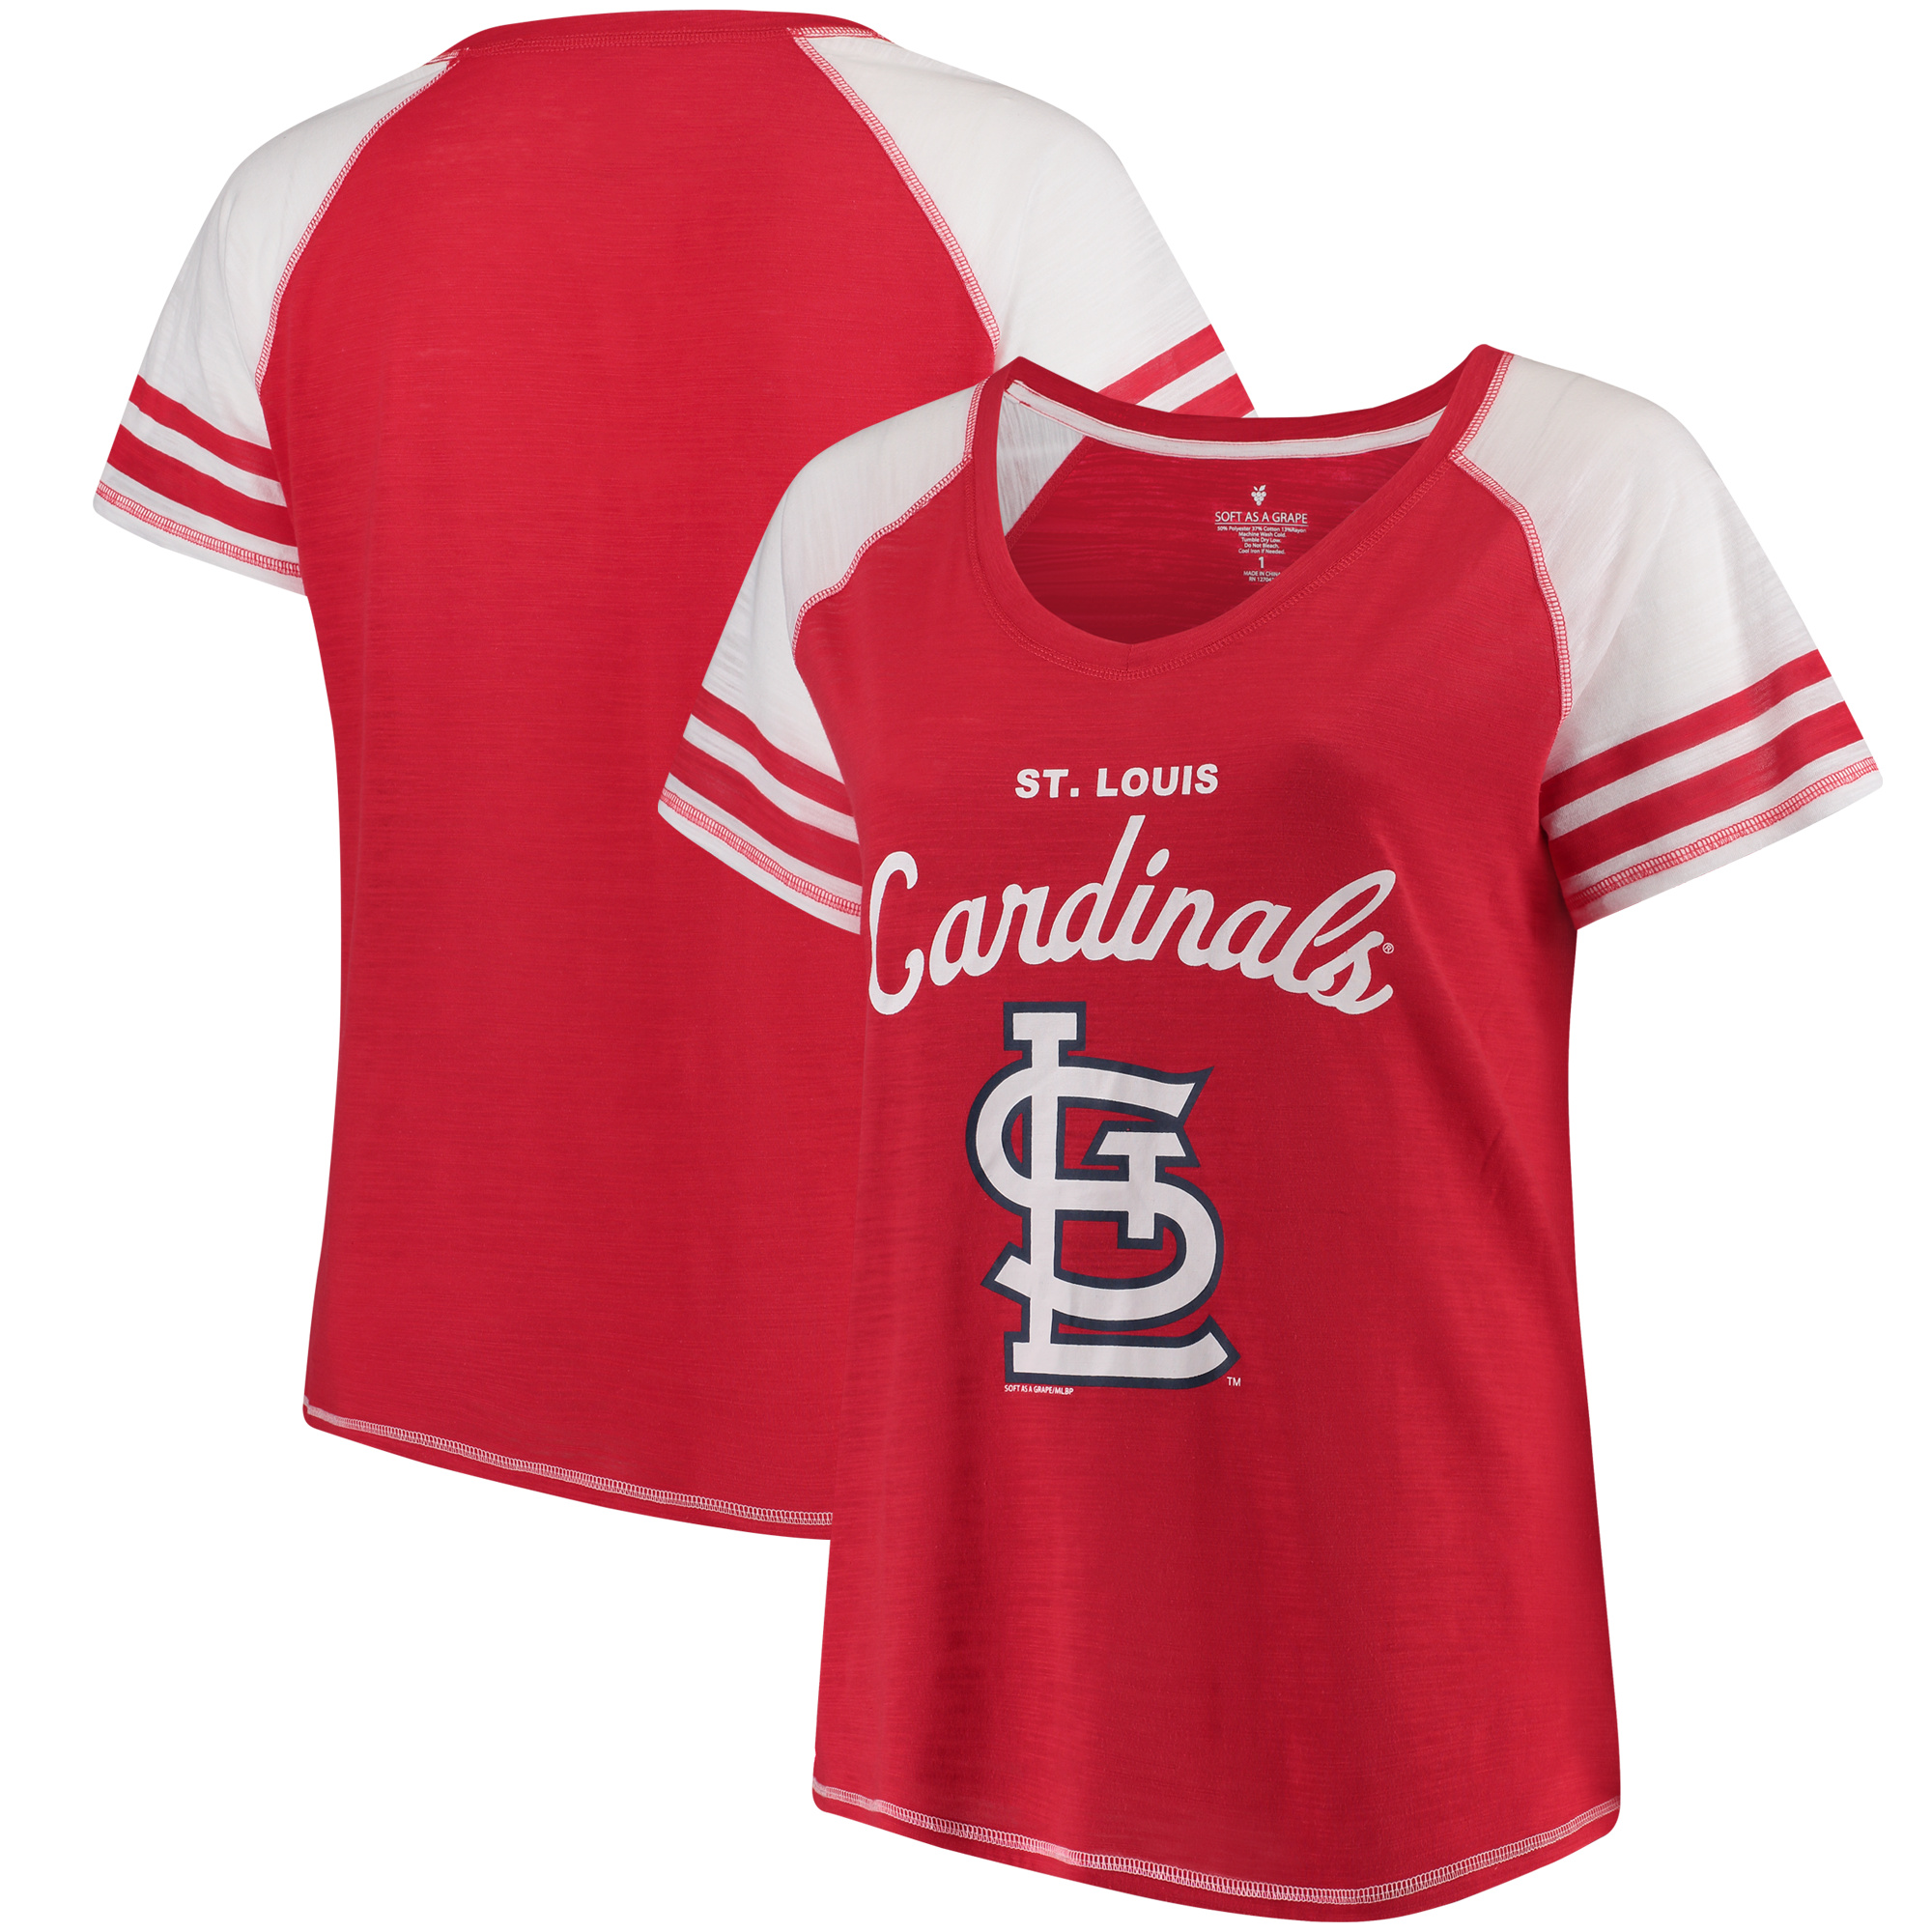 St. Louis Cardinals Soft as a Grape Women's Plus Sizes Three Out Color Blocked Raglan Sleeve T-Shirt - Red